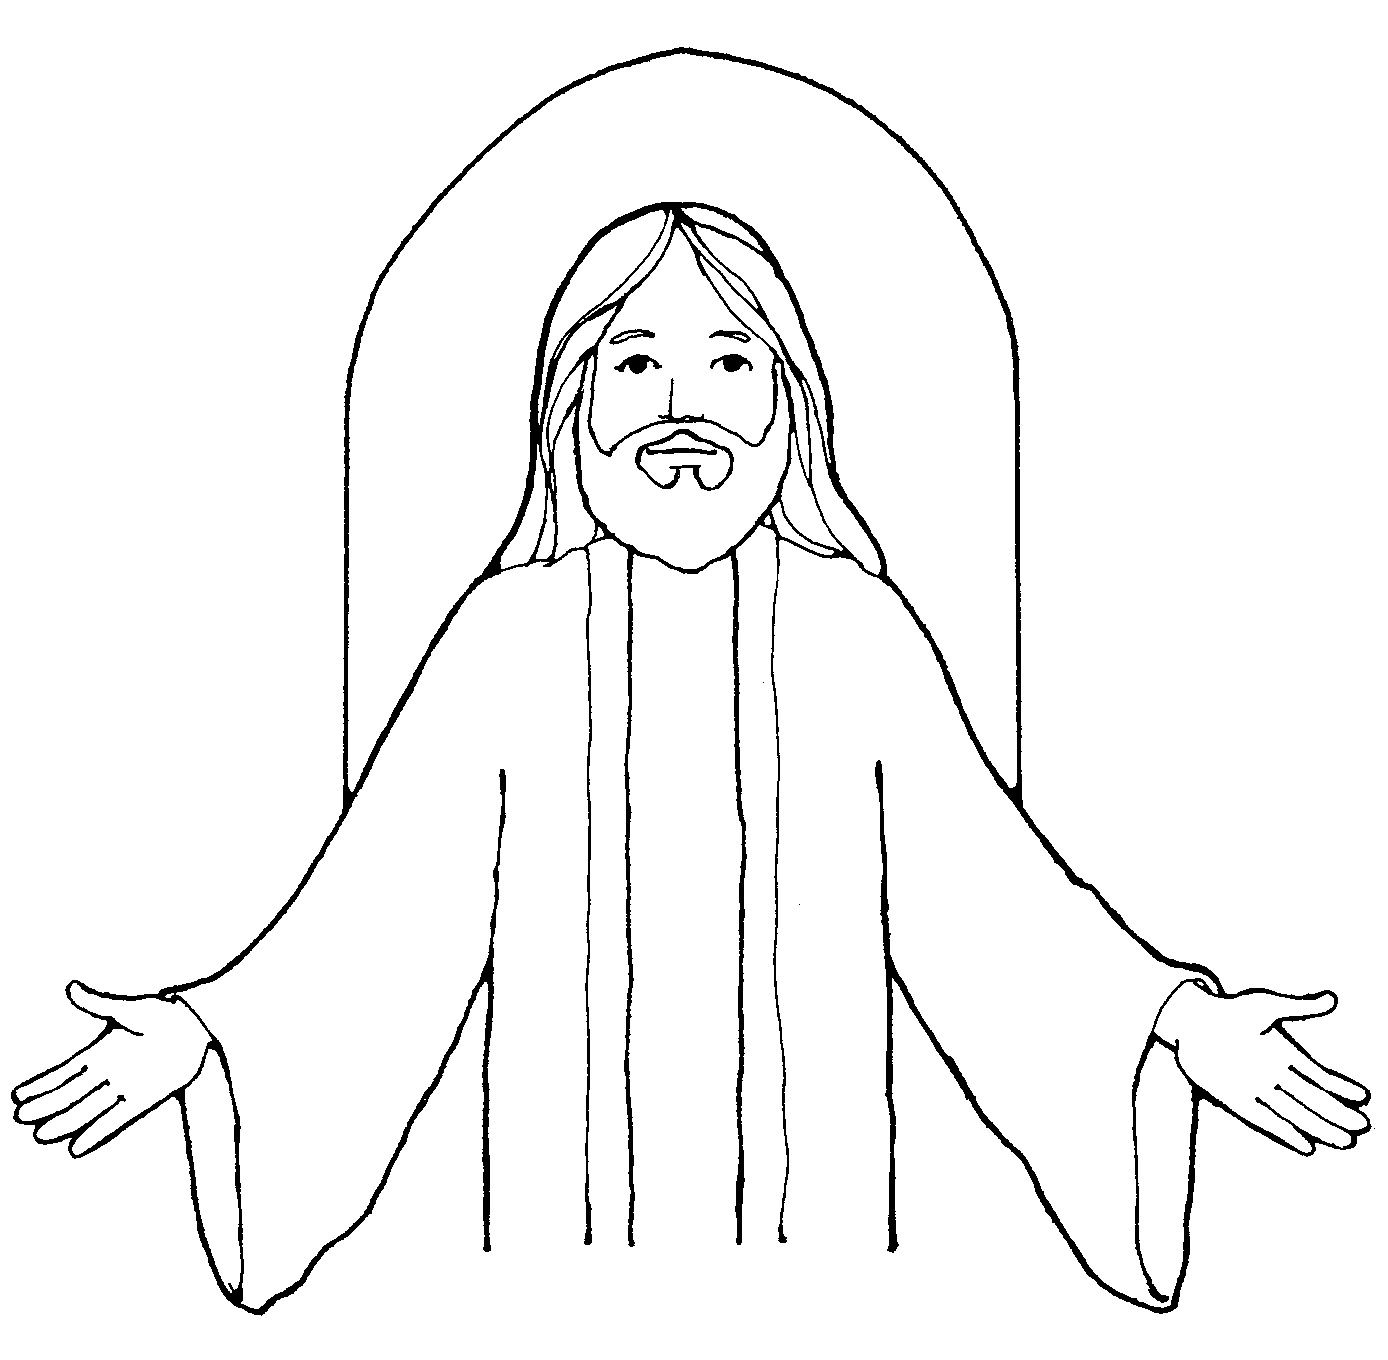 free lds clipart to color for primary children | This black and ...